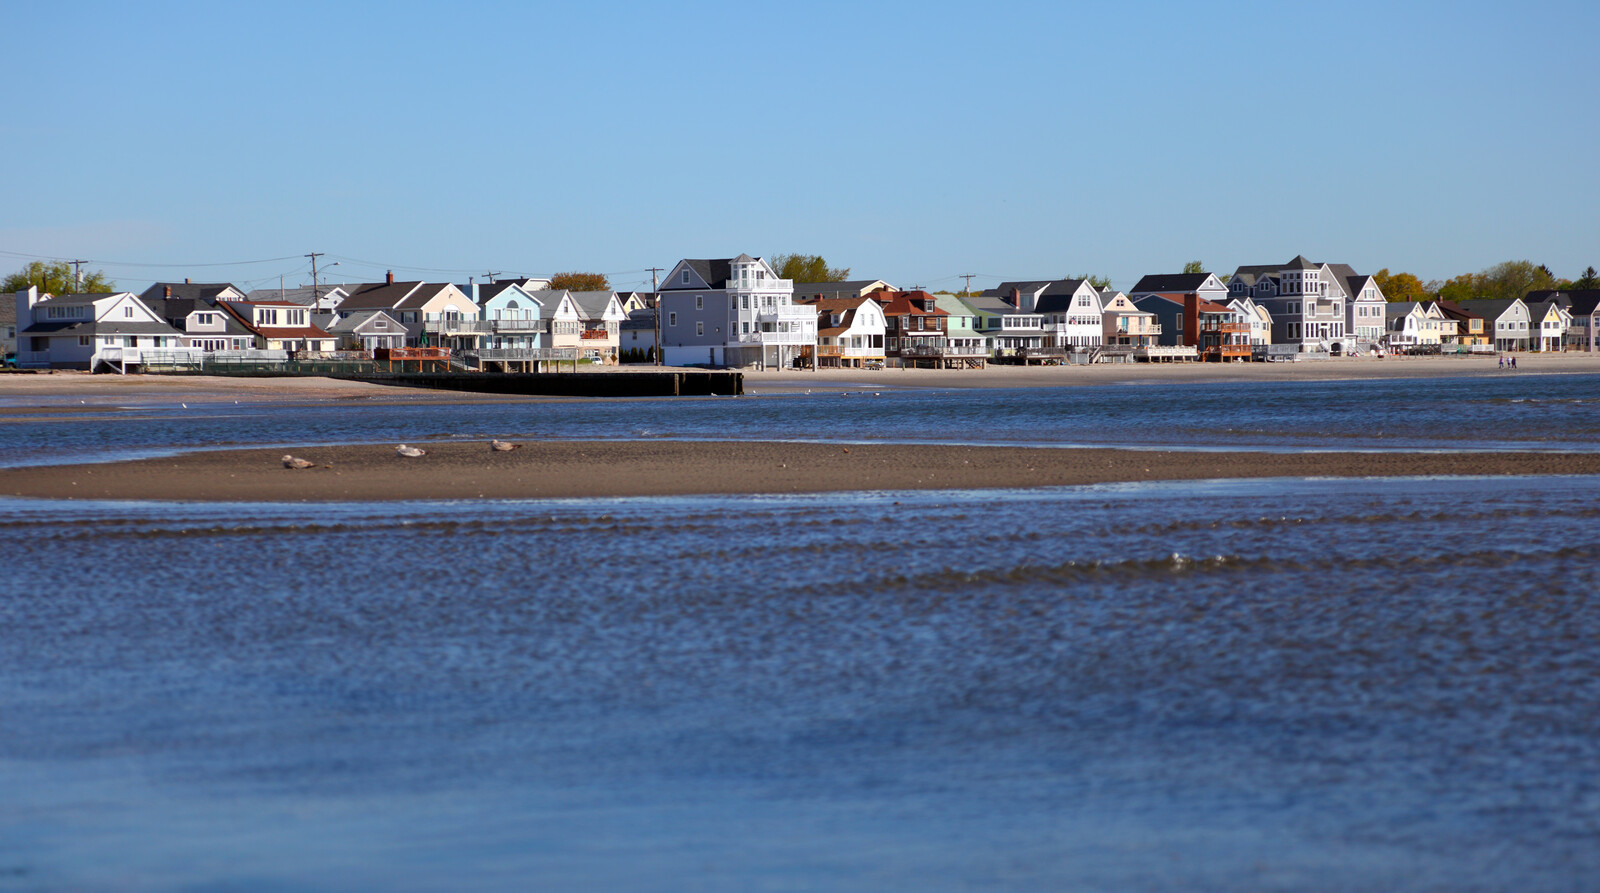 Coastal town with colonial style homes sitting on the beach